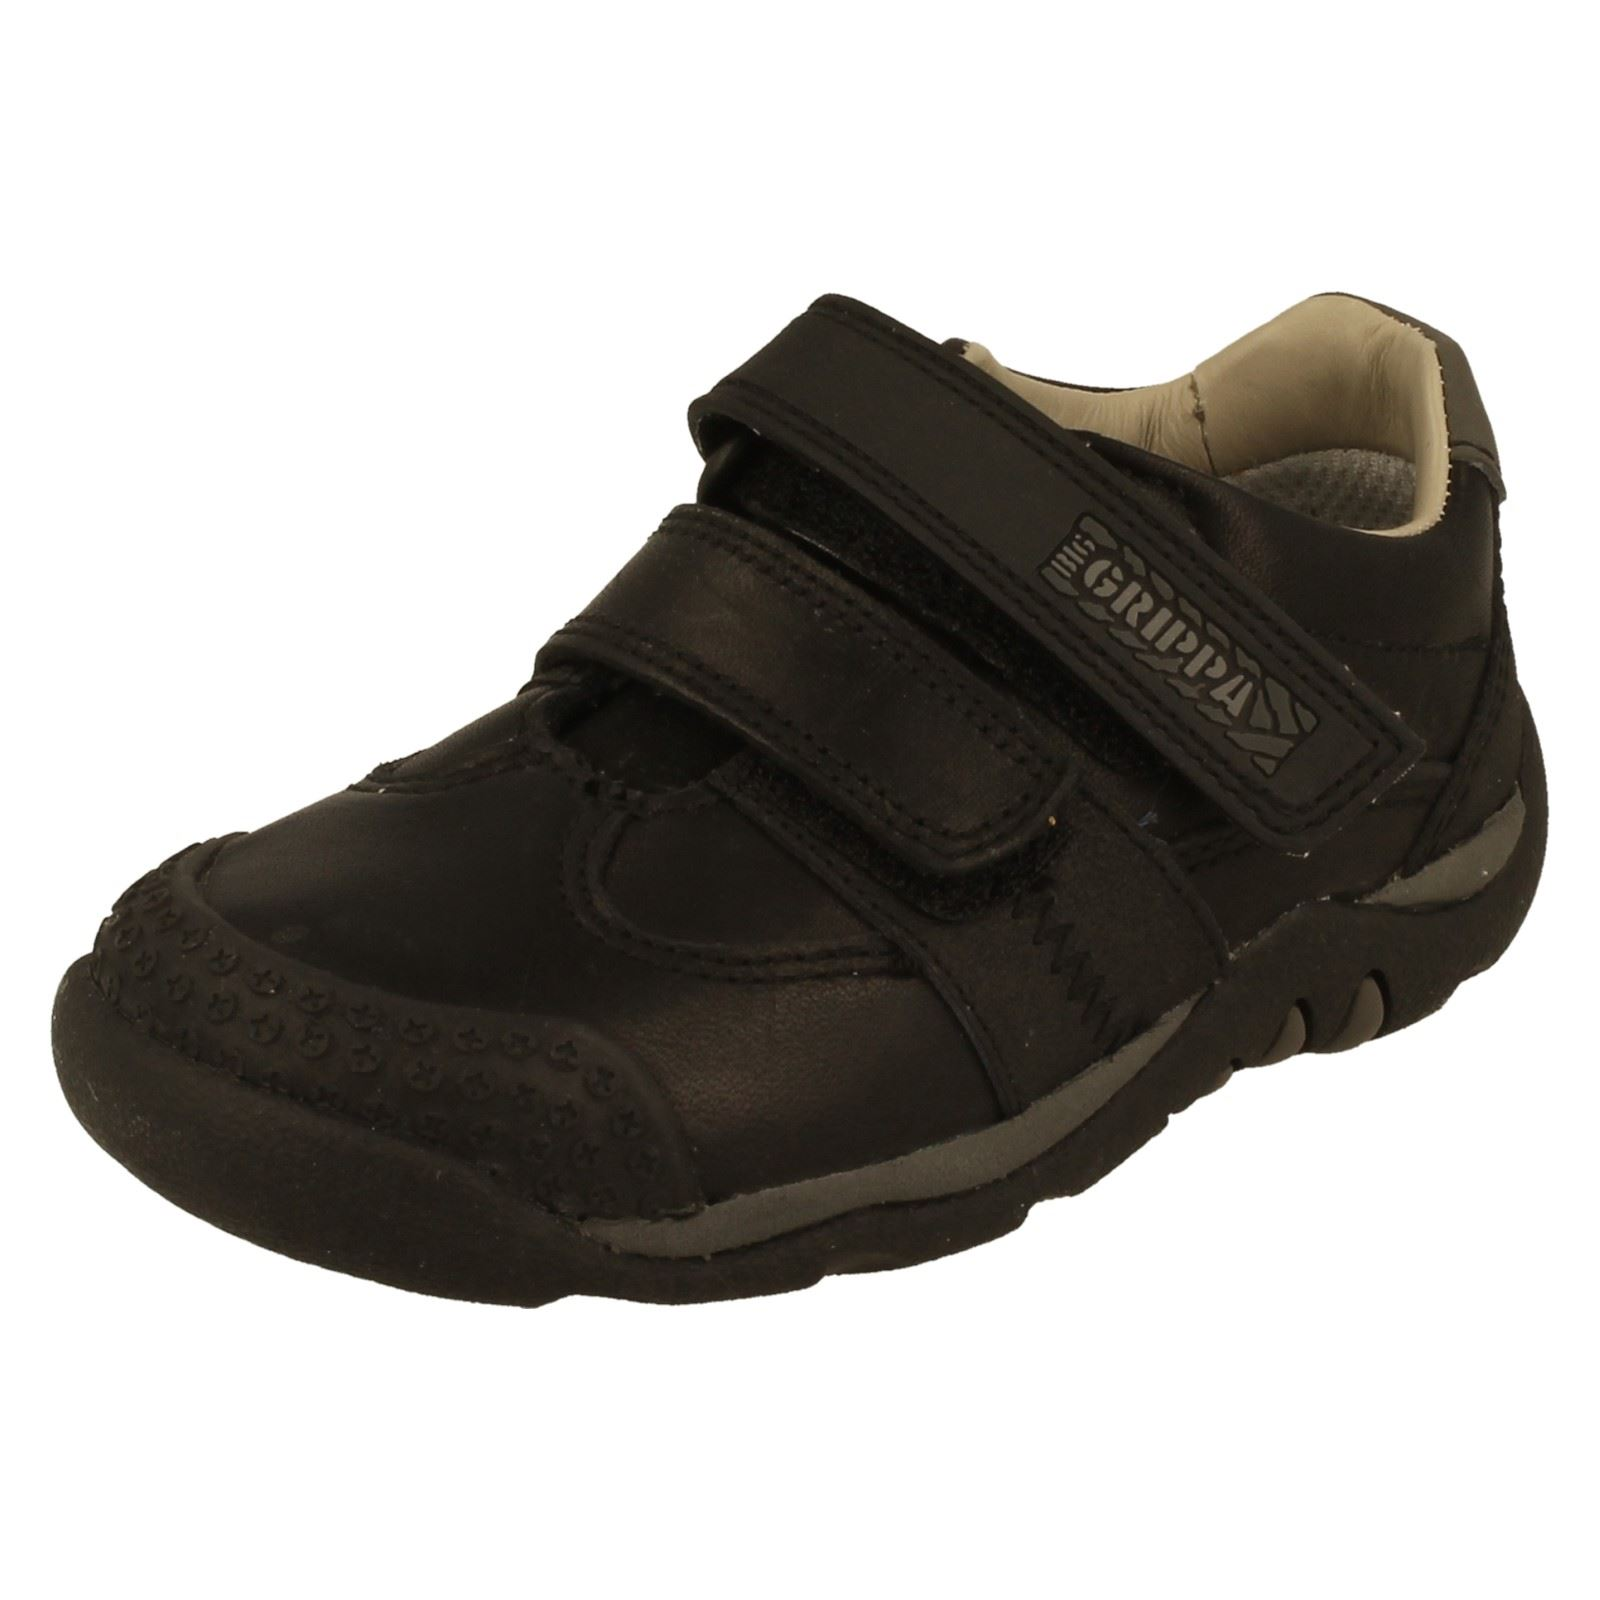 Boys Clarks Shoes Style Gravel Mover -W